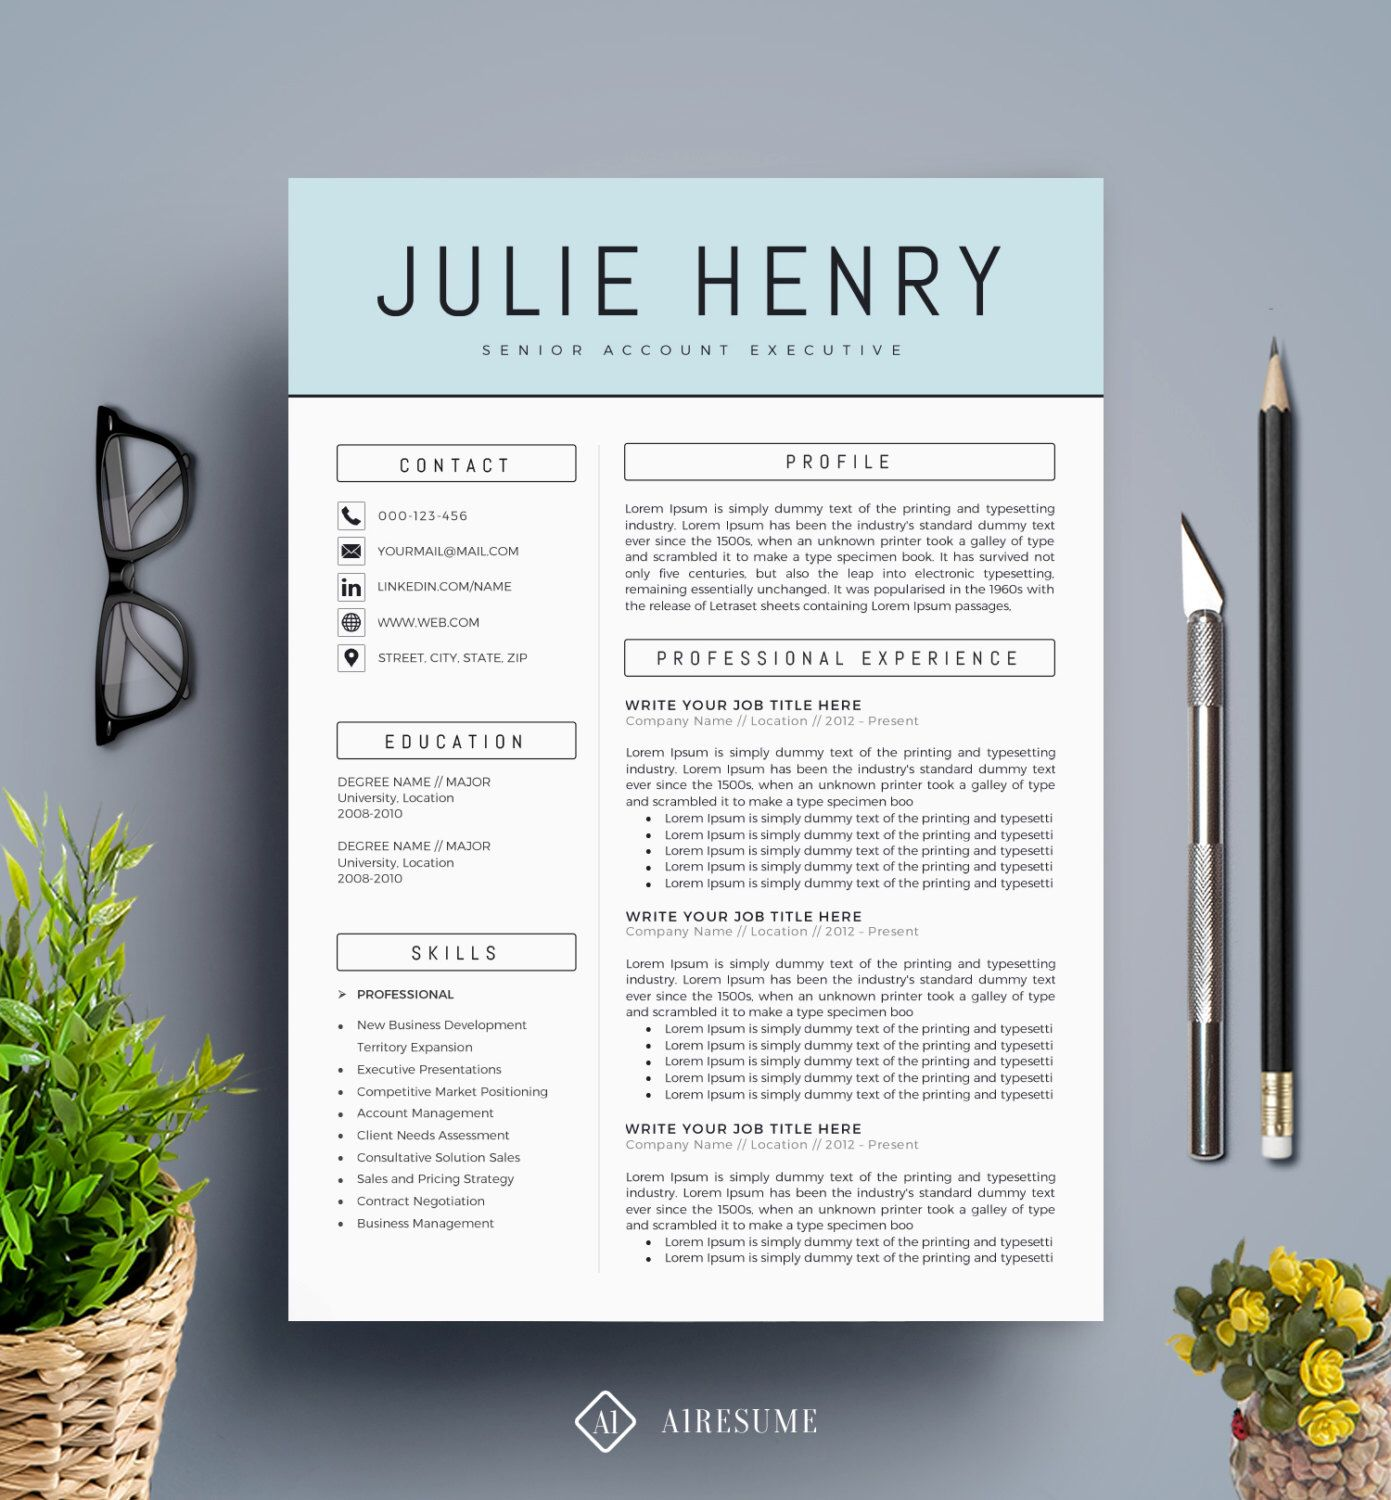 Good Template For Resume Cv Template Examples Writing A Cv Curriculum Vitae  Templates, 7 Free Resume Templates Primer, 7 Free Resume Templates Primer,  Resume Writing For Dummies